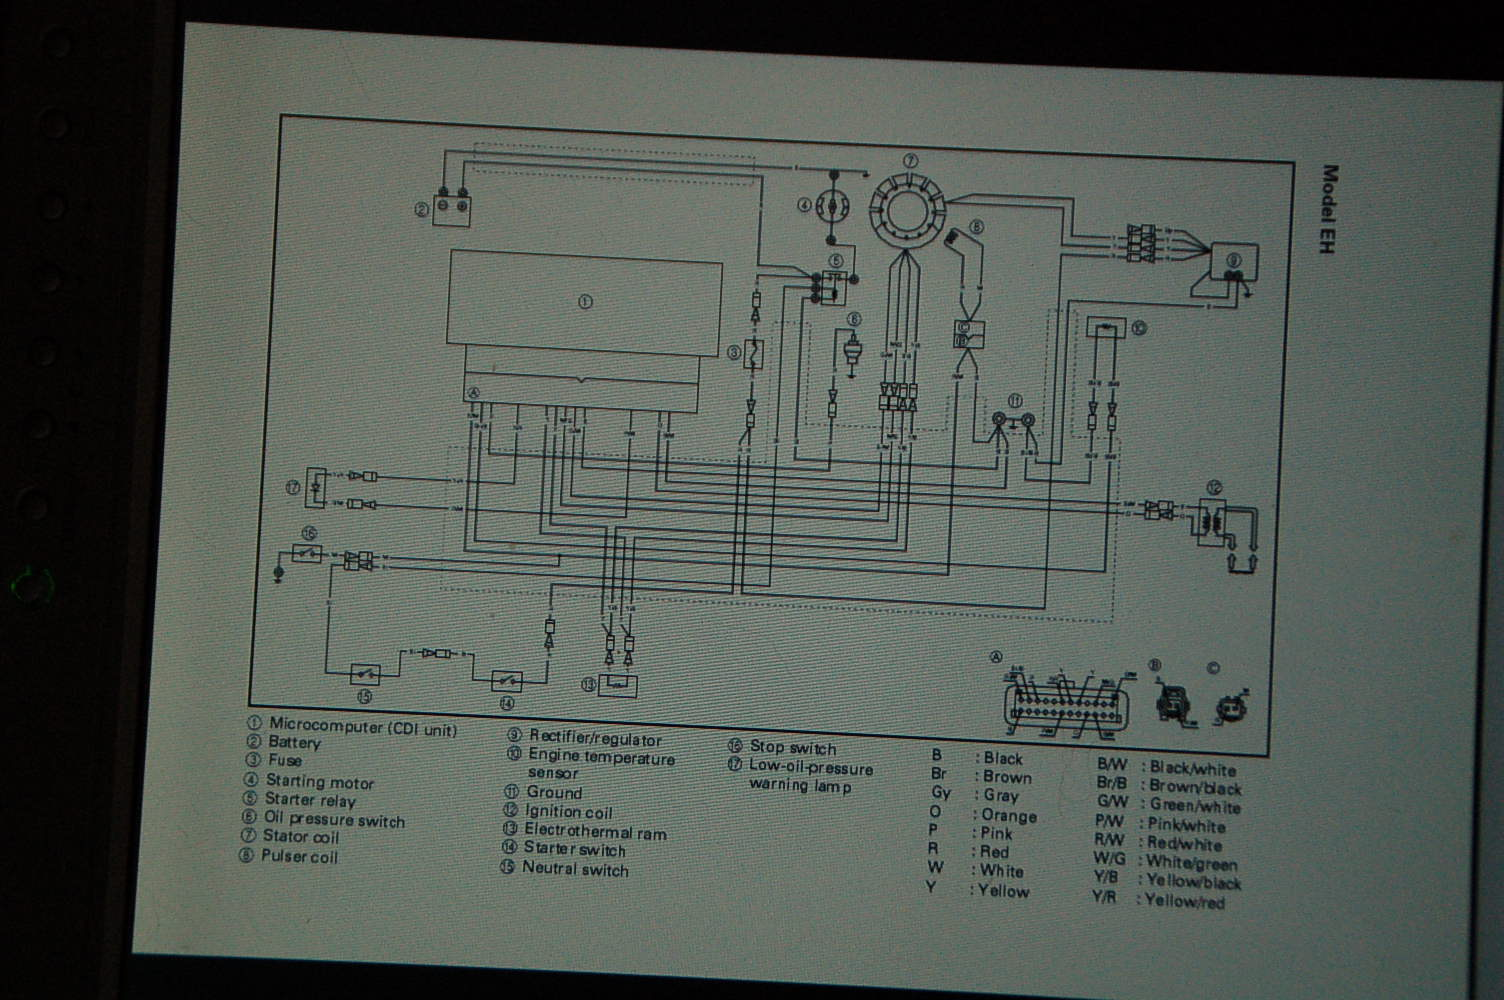 wiring up yamaha 30 boat design net yamaha 10 pin wiring harness diagram at bayanpartner.co